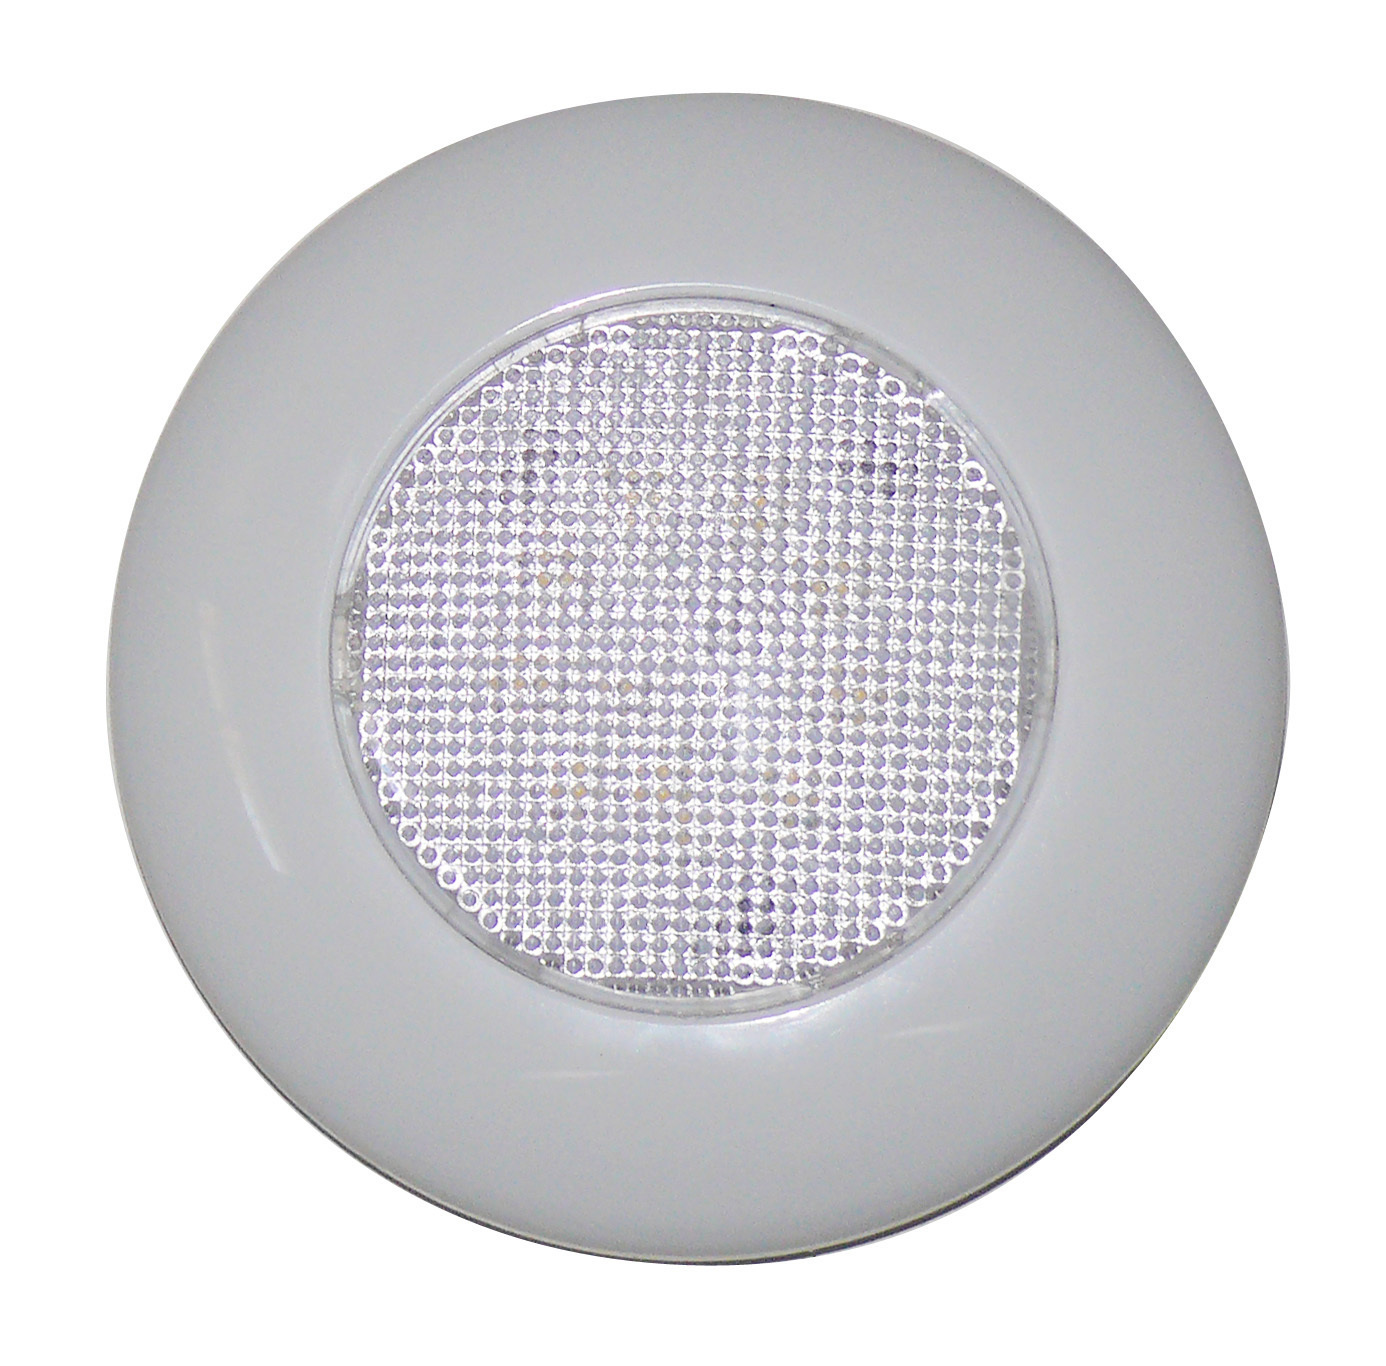 9 Diode Cost Effective LED Round Light - No Switch 65208